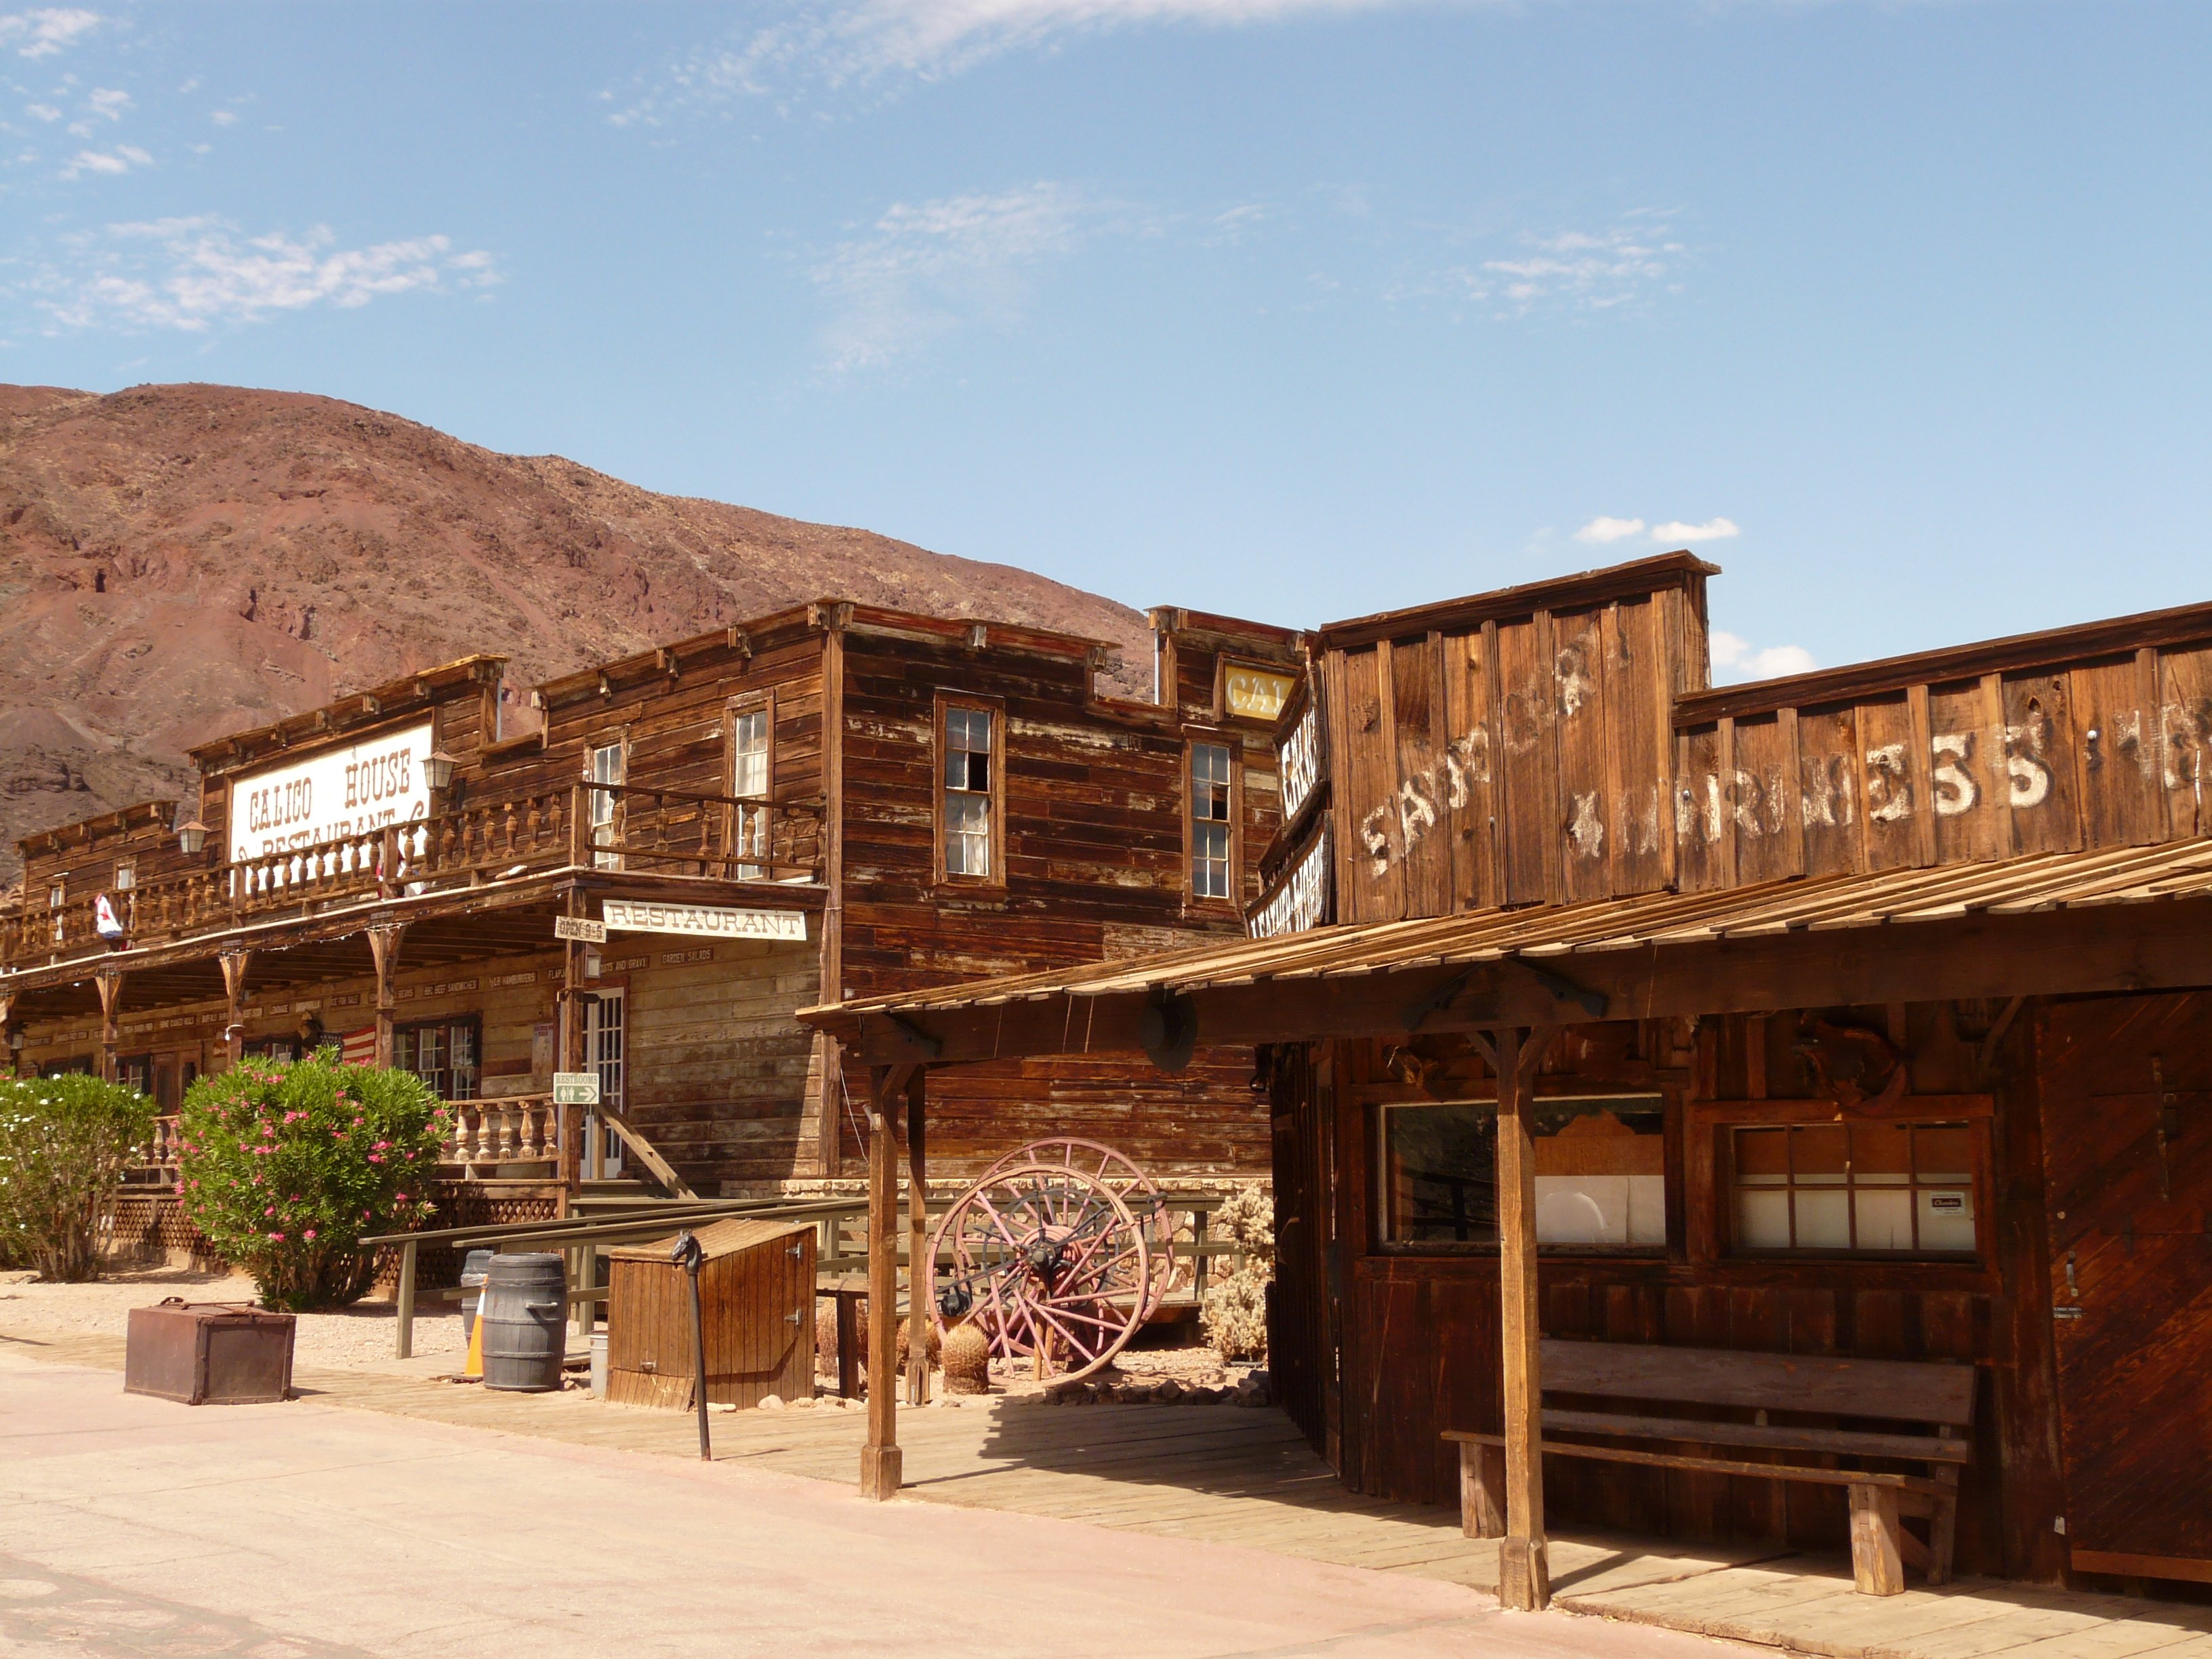 Wild West clipart ghost town #2